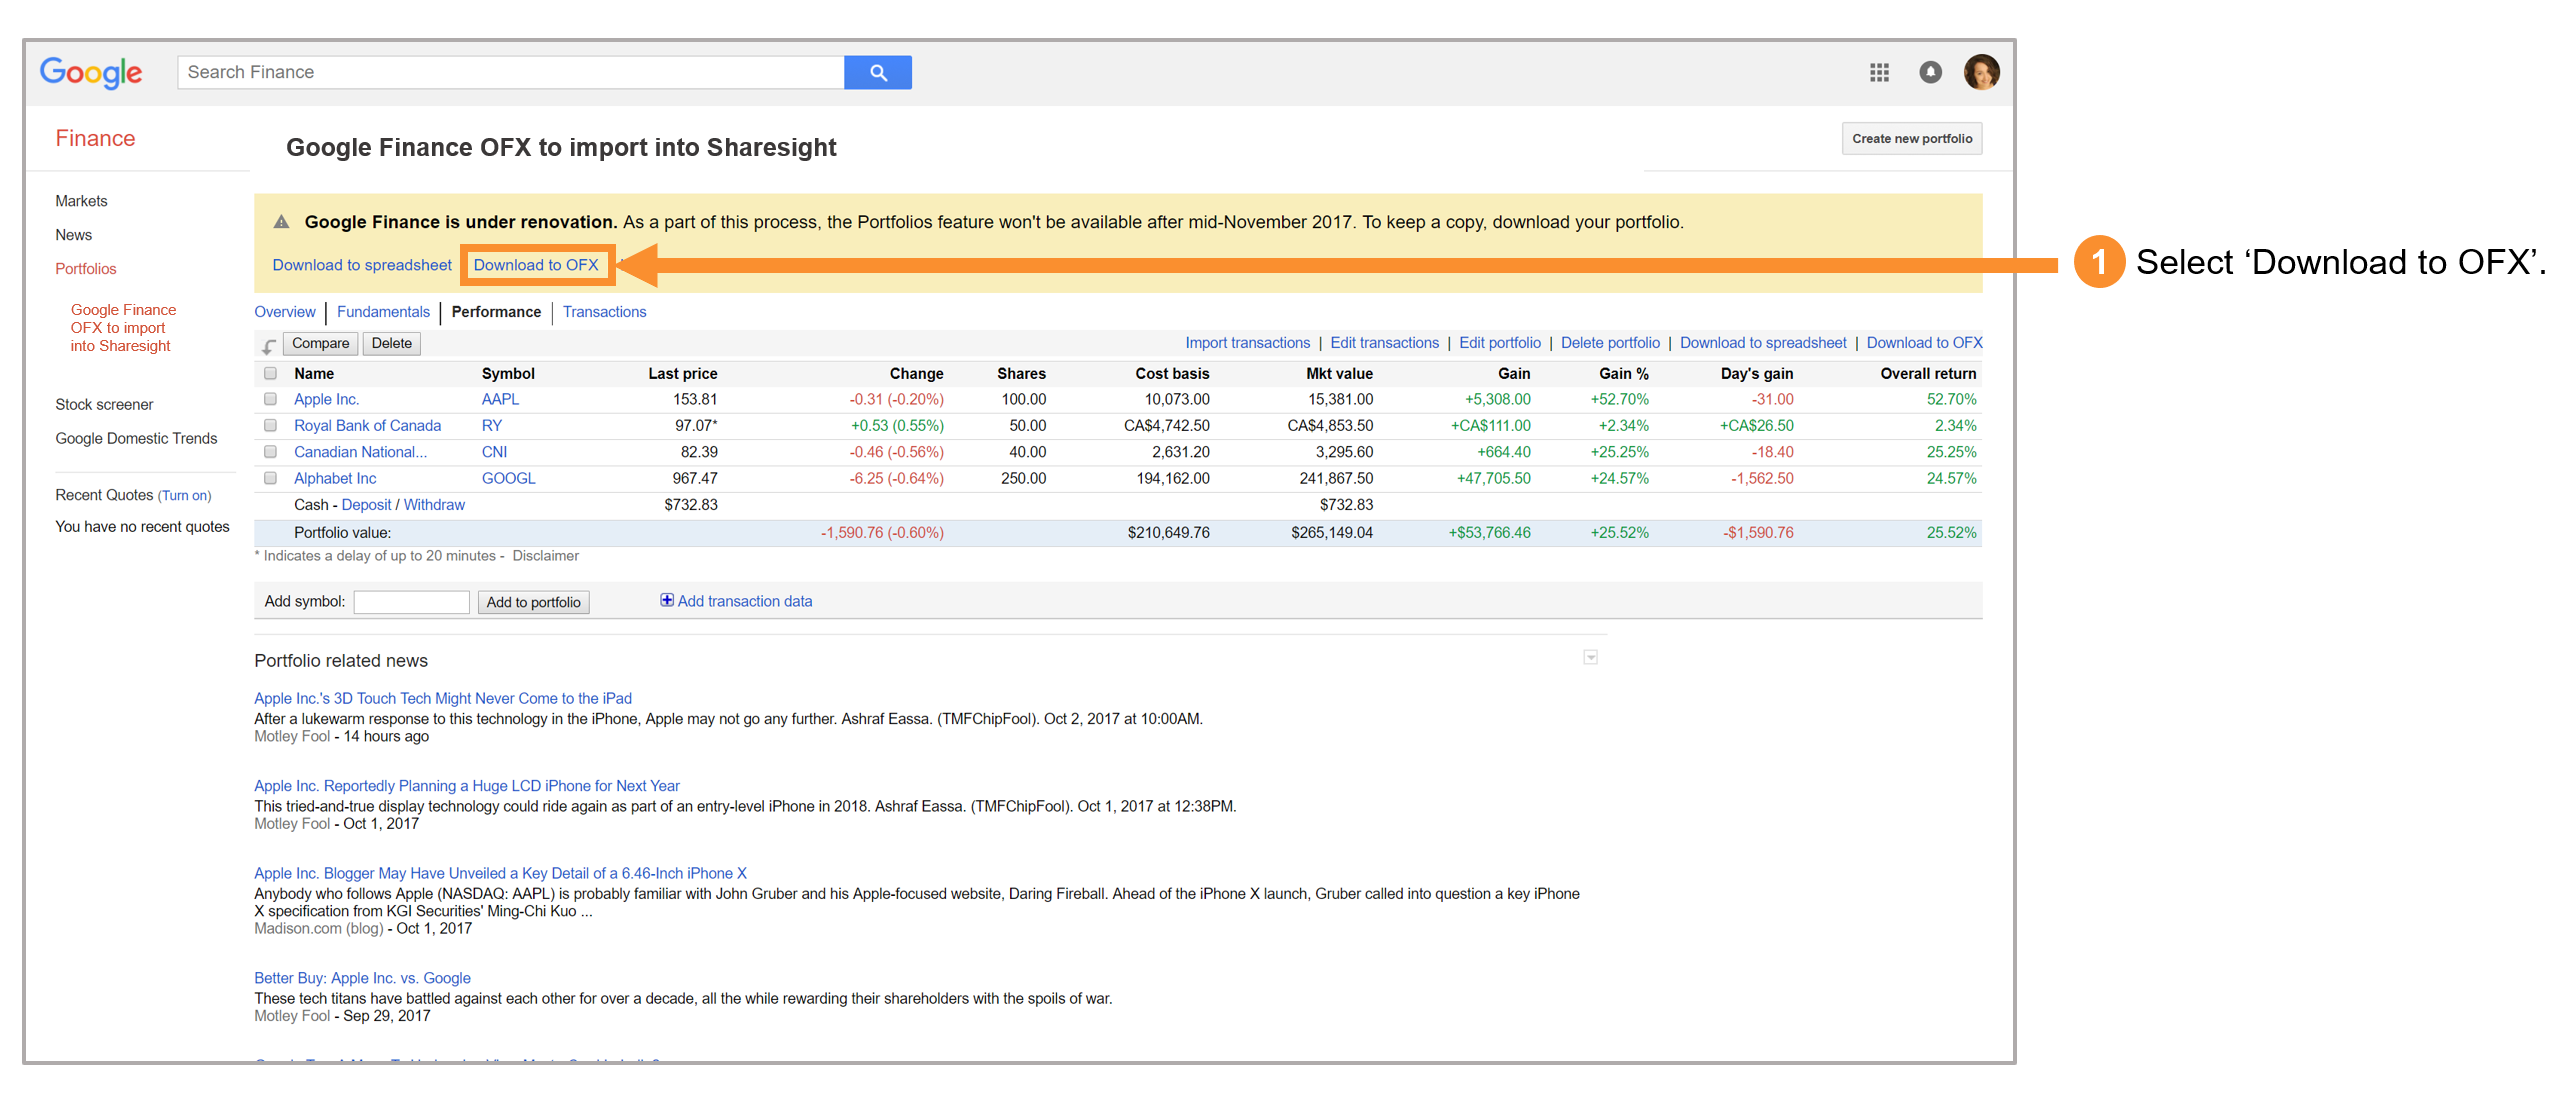 Select Download to OFX from Google Finance